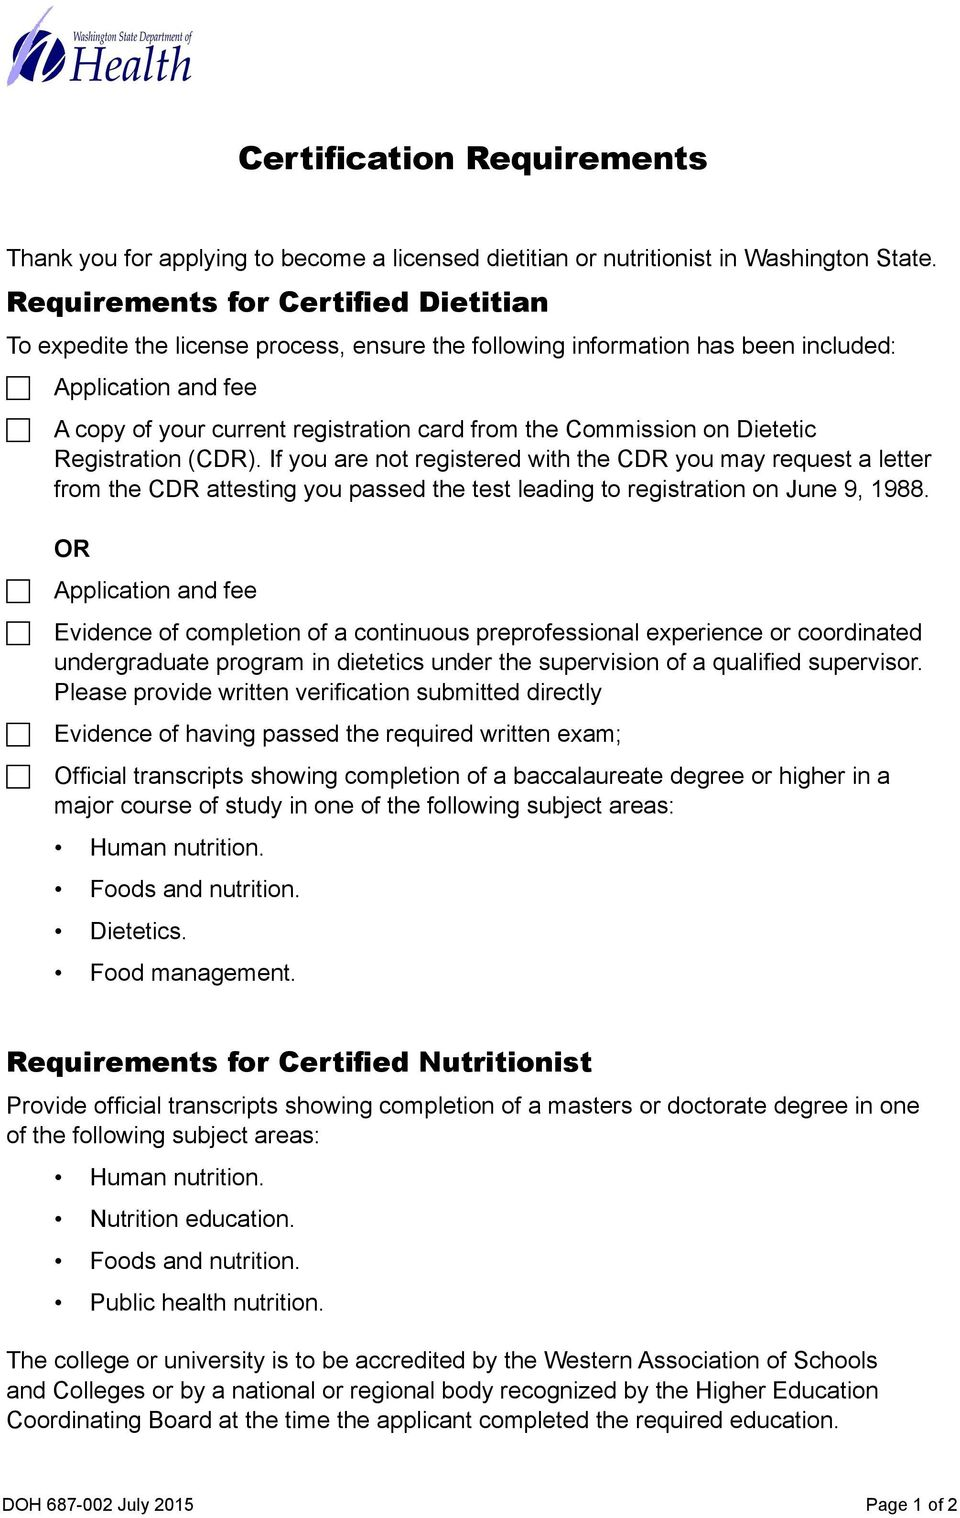 Commission on Dietetic Registration (CDR). If you are not registered with the CDR you may request a letter from the CDR attesting you passed the test leading to registration on June 9, 1988.